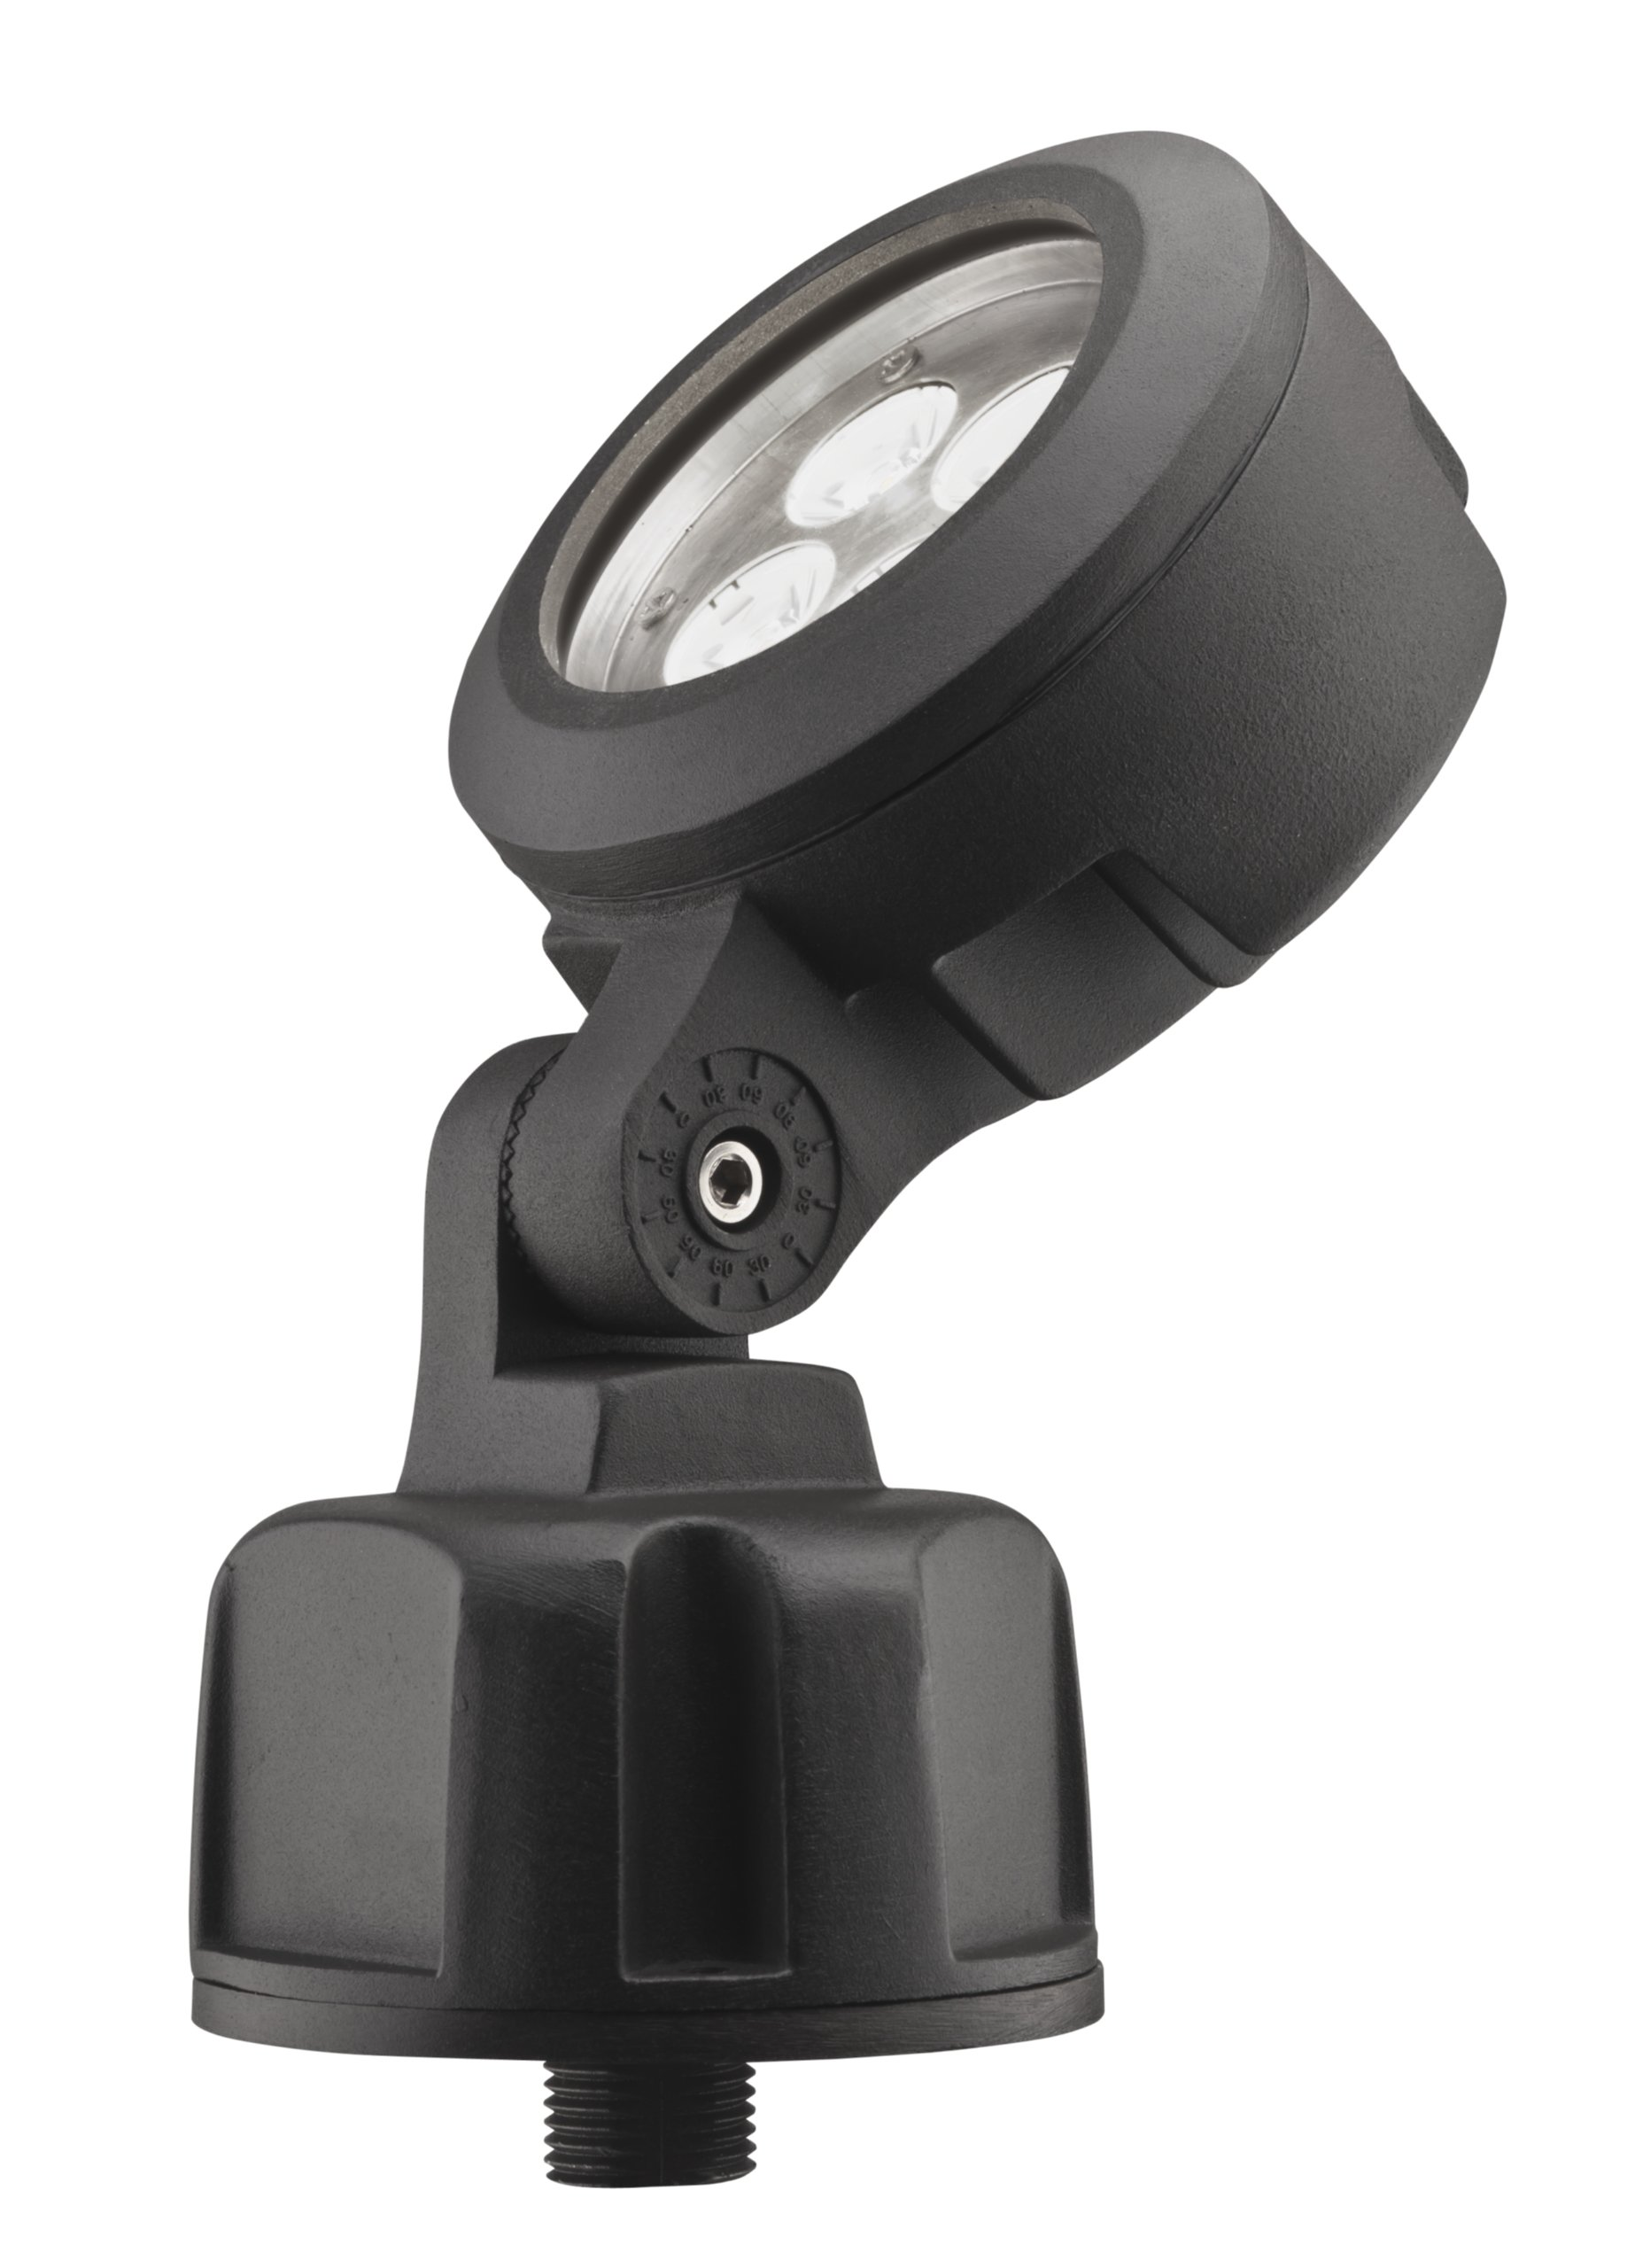 Lithonia Lighting OLBS 8 30K DDB M6 Outdoor LED Bullet 8-Inch 3000K Spotlight, Black Bronze by Lithonia Lighting